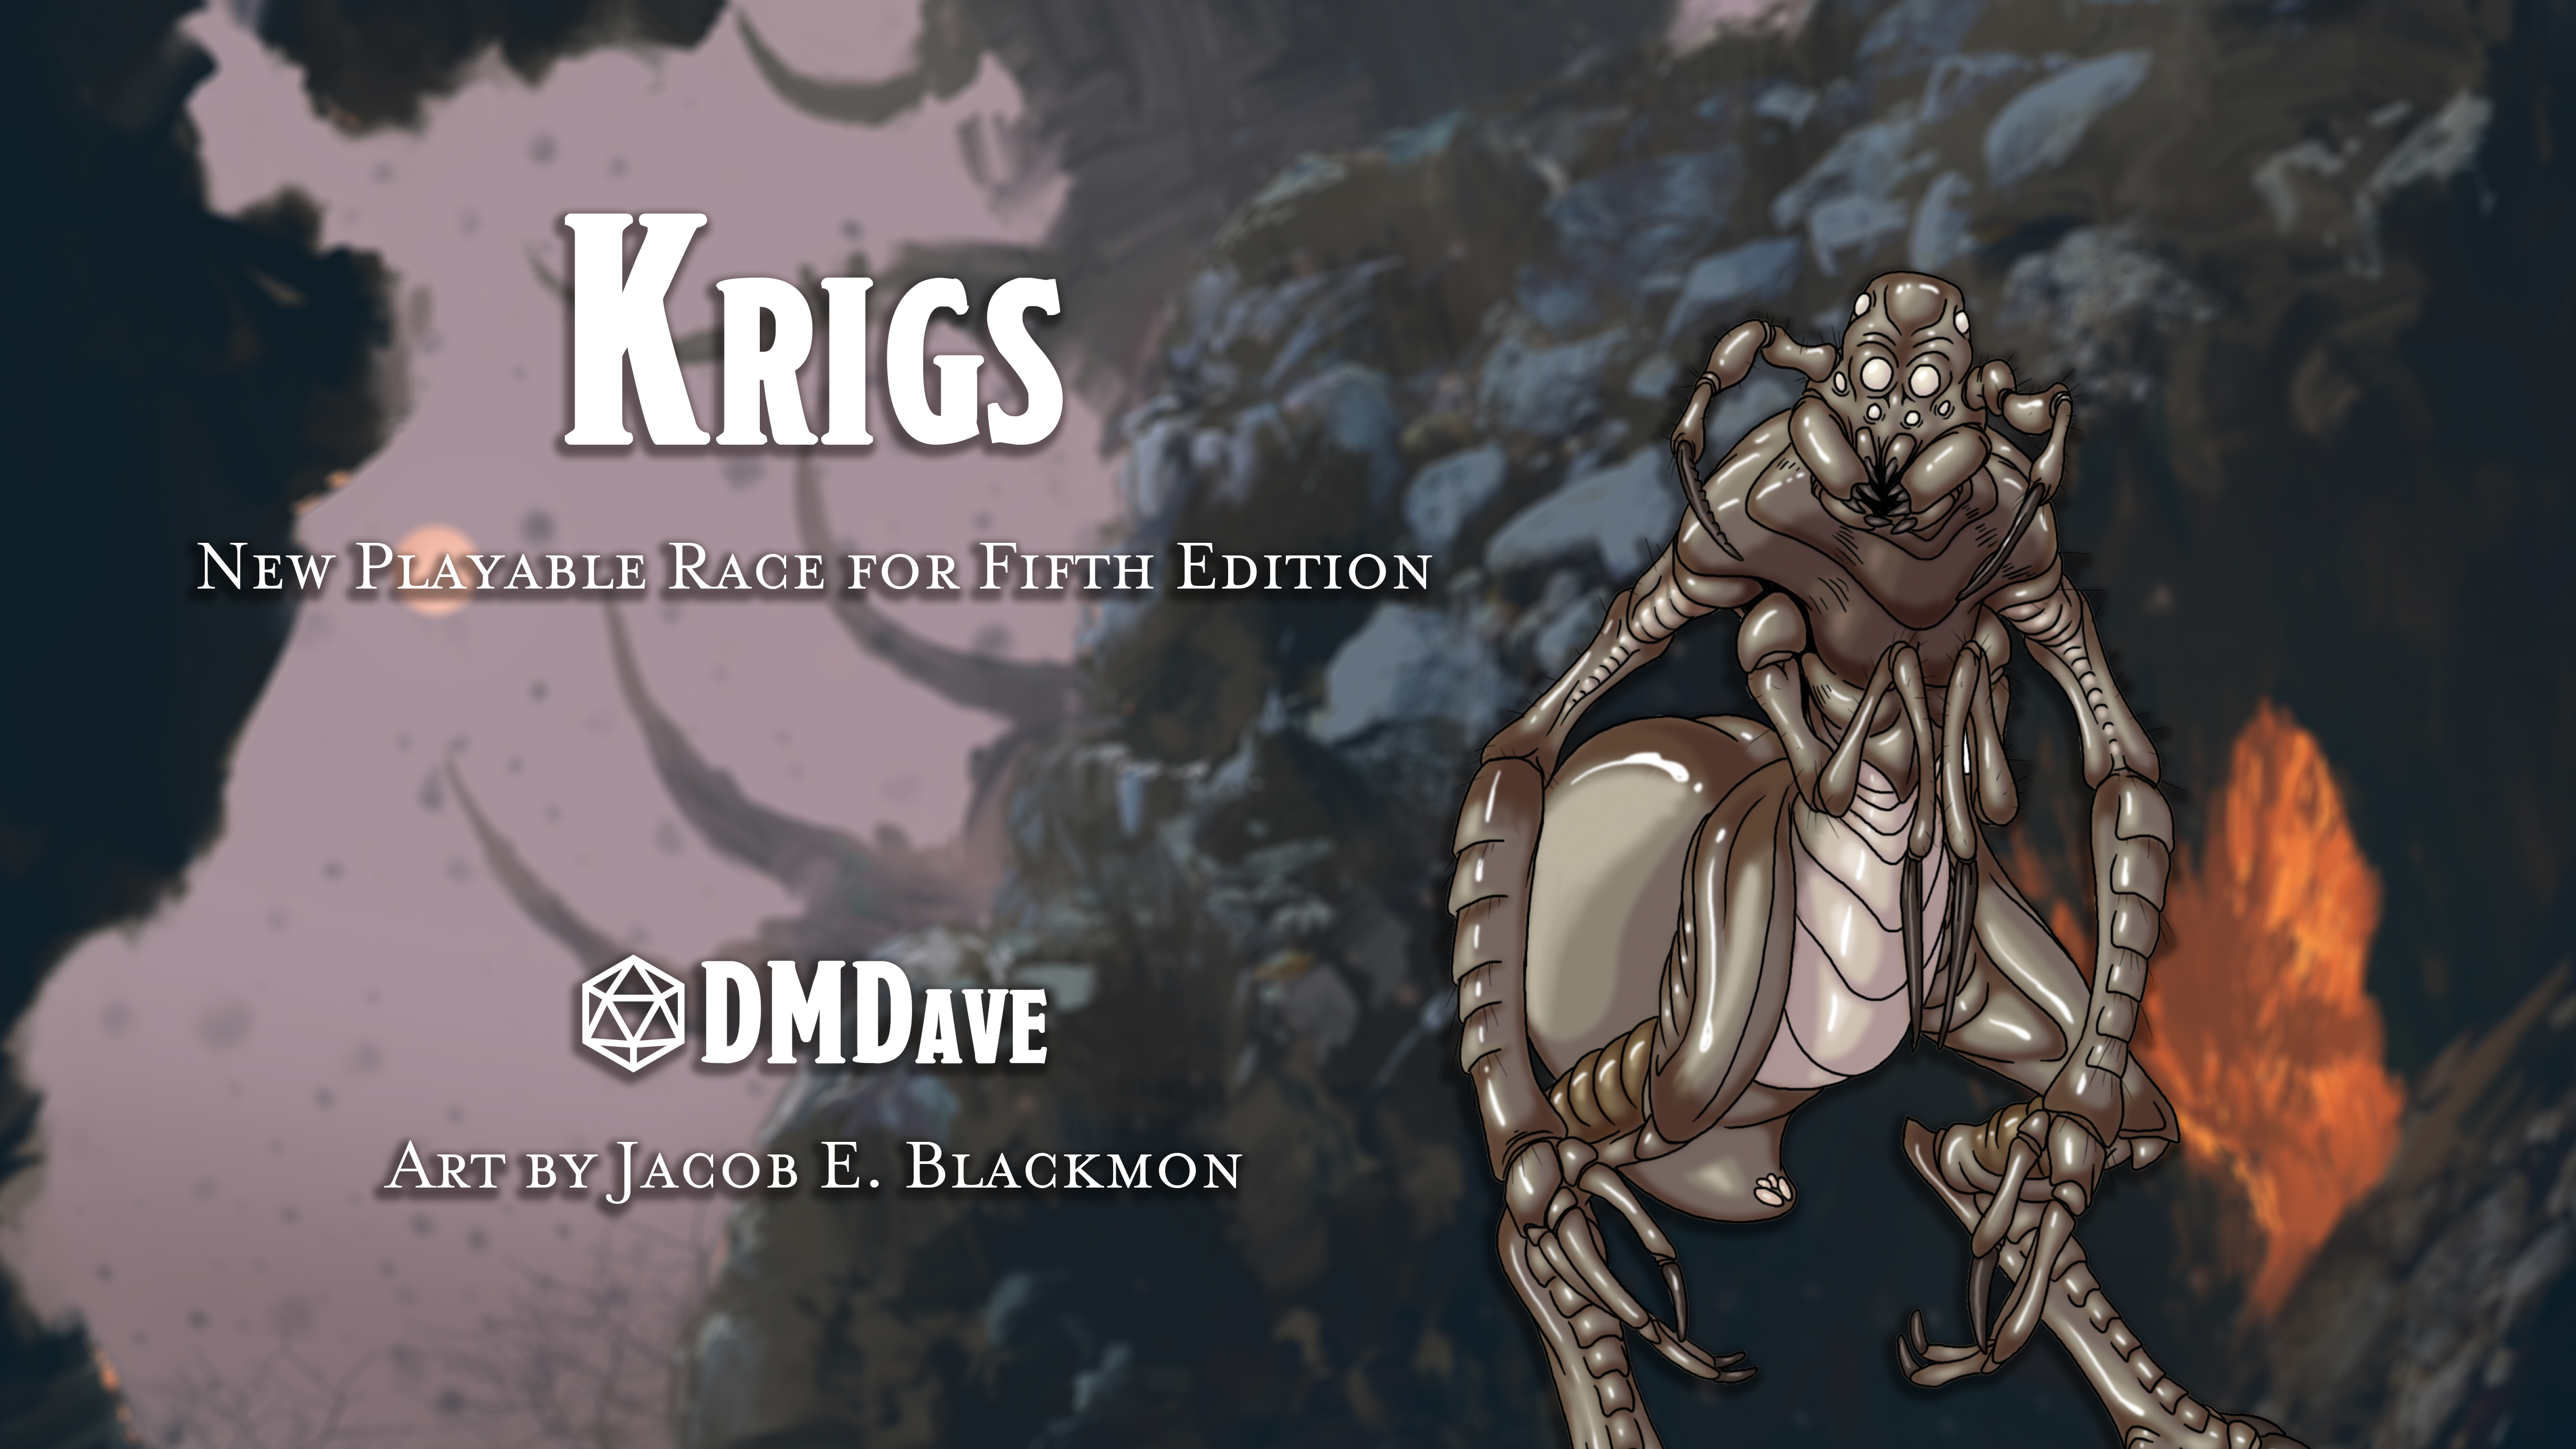 Krigs | New Playable Race for Fifth Edition